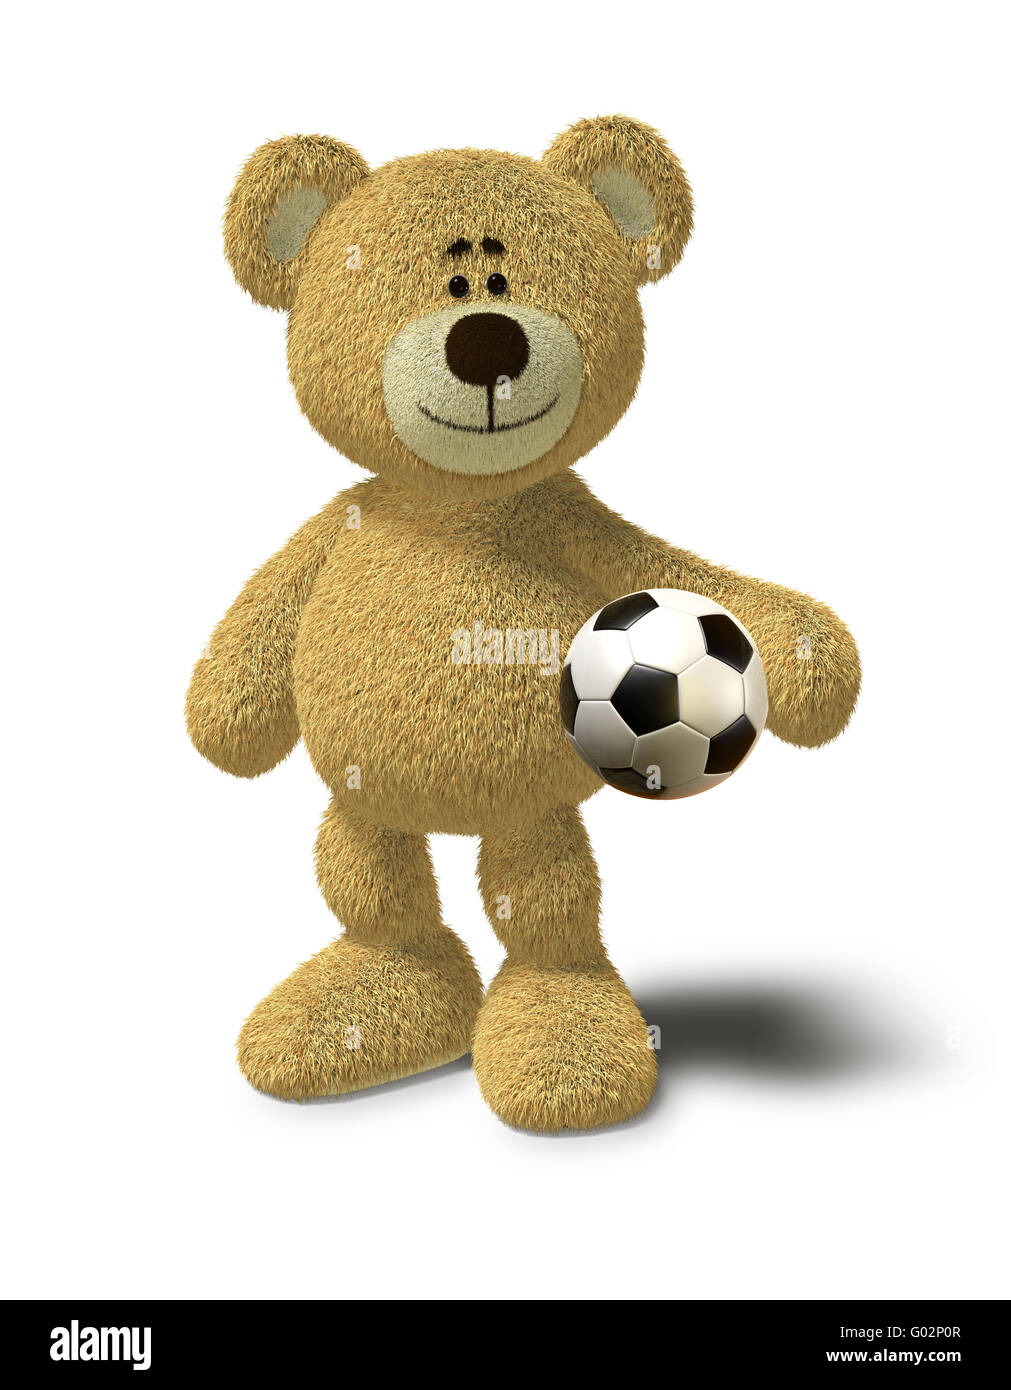 Nhi Bear holds a soccer ball - Stock Image